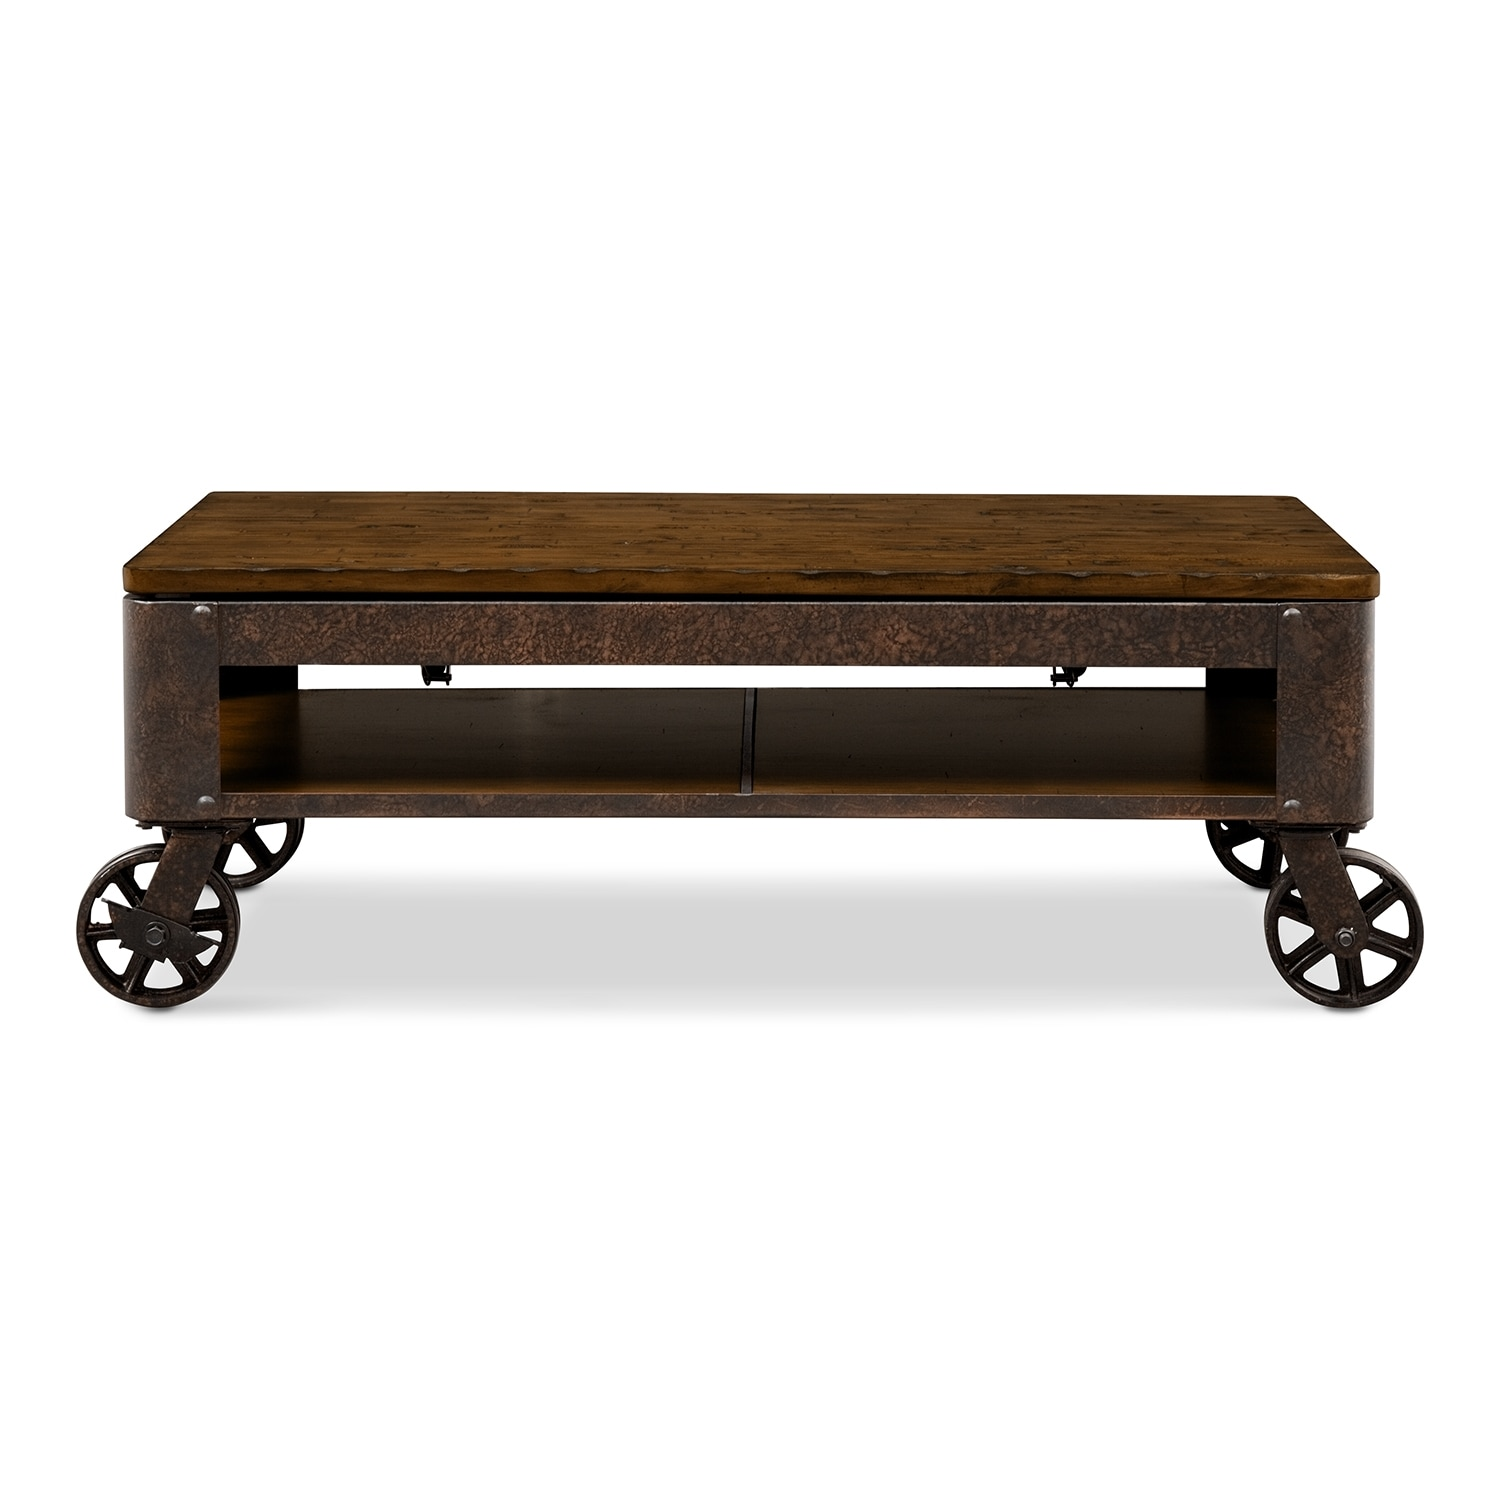 Shortline Lift Top Coffee Table Value City Furniture And Mattresses